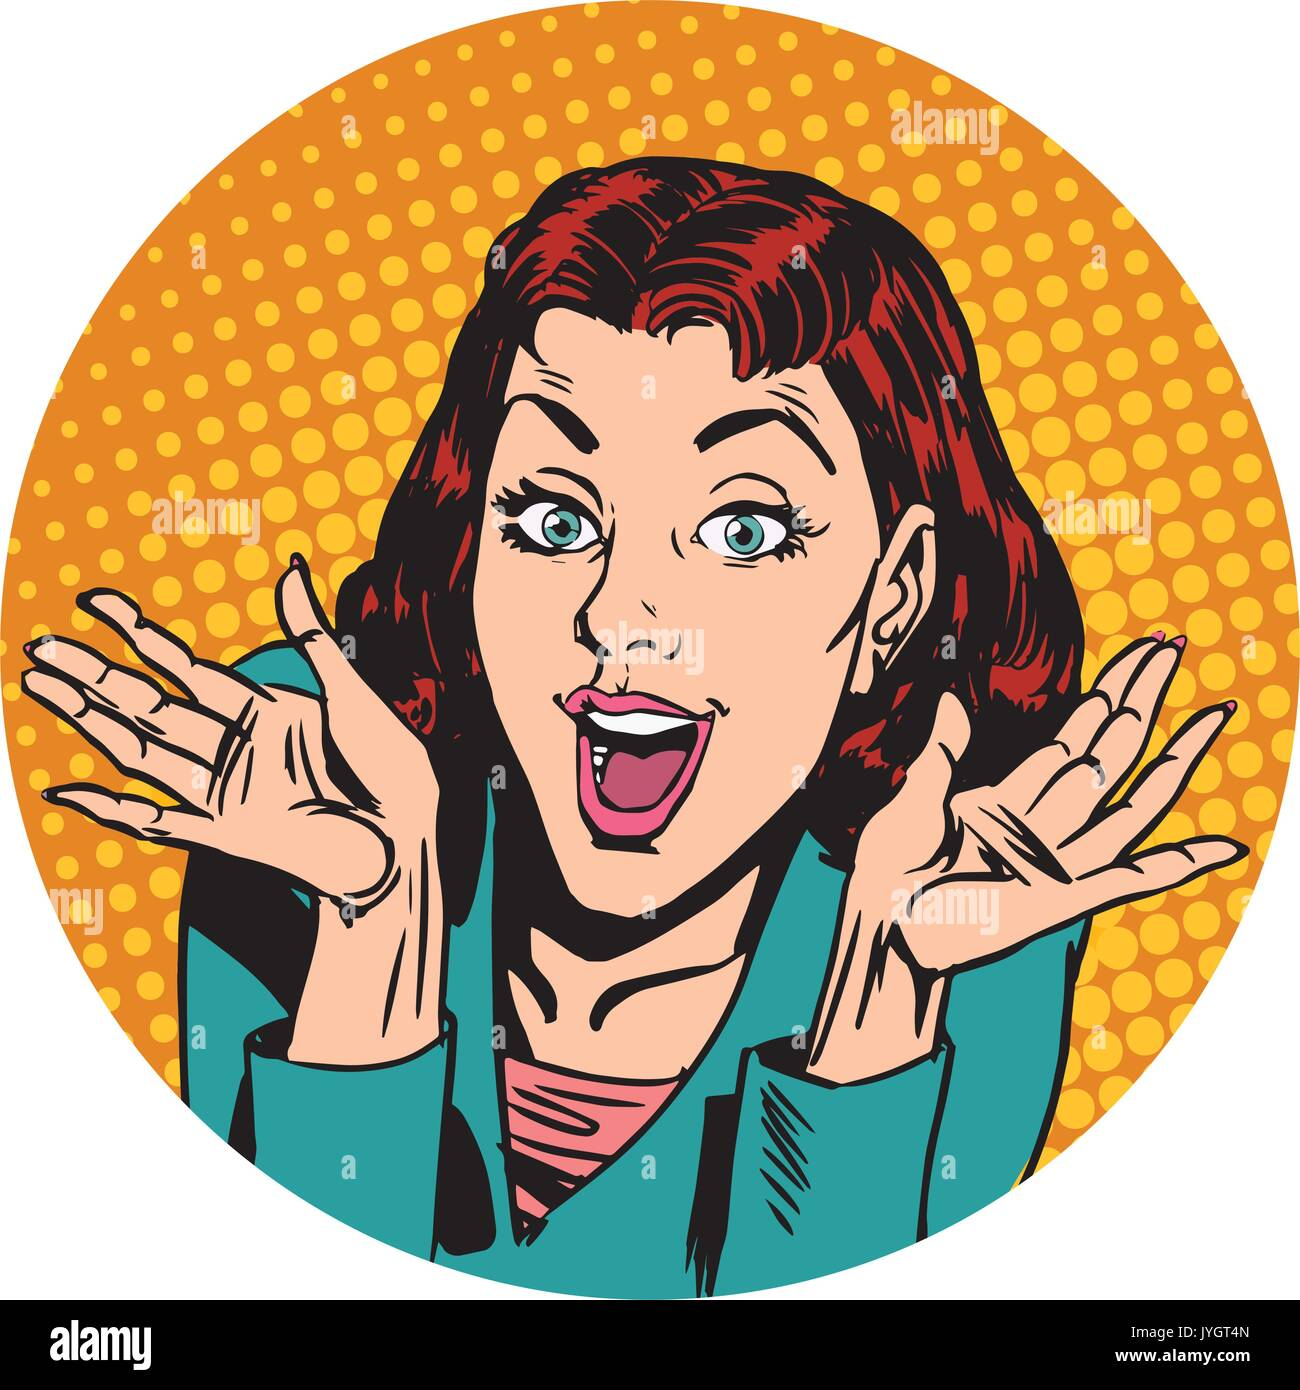 Lady Comic Character Icon Stock Photos Amp Lady Comic